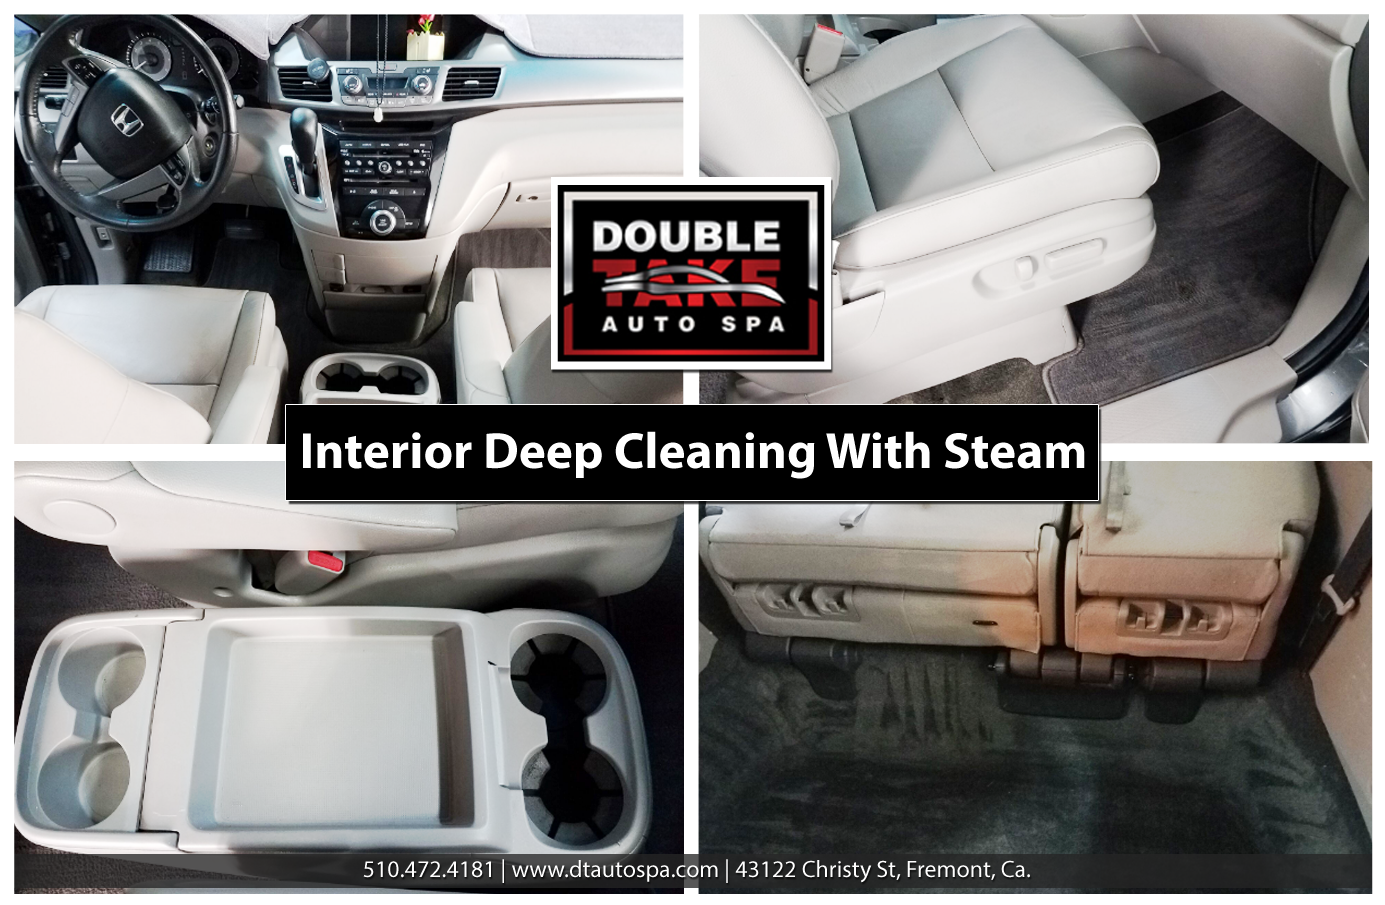 Doubletake Auto Spa Coupons Near Me In Fremont 8coupons